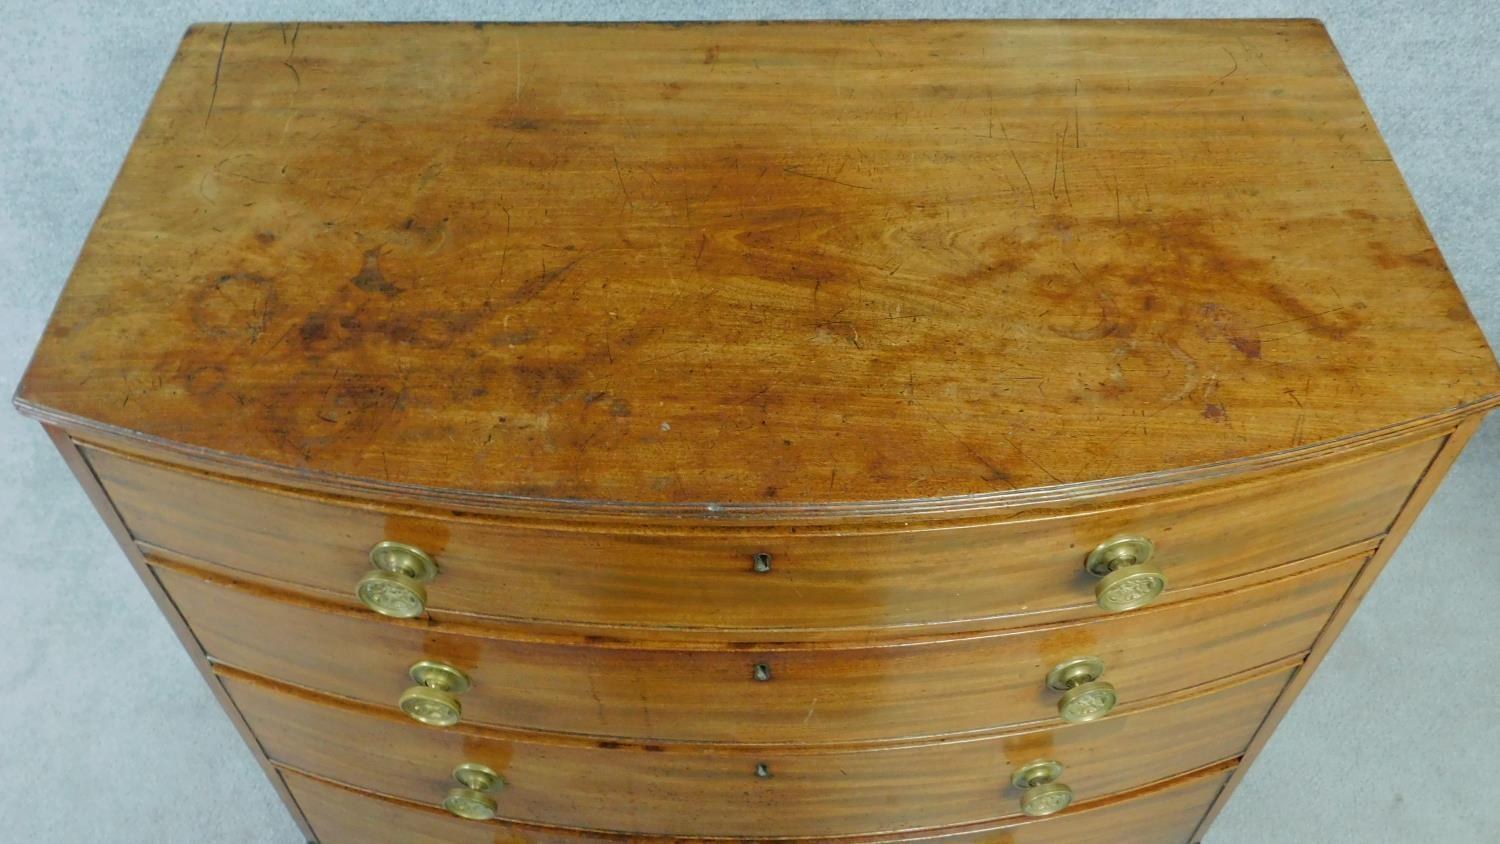 A Regency mahogany bow fronted chest of four long drawers with solid mahogany drawer linings, - Image 4 of 6